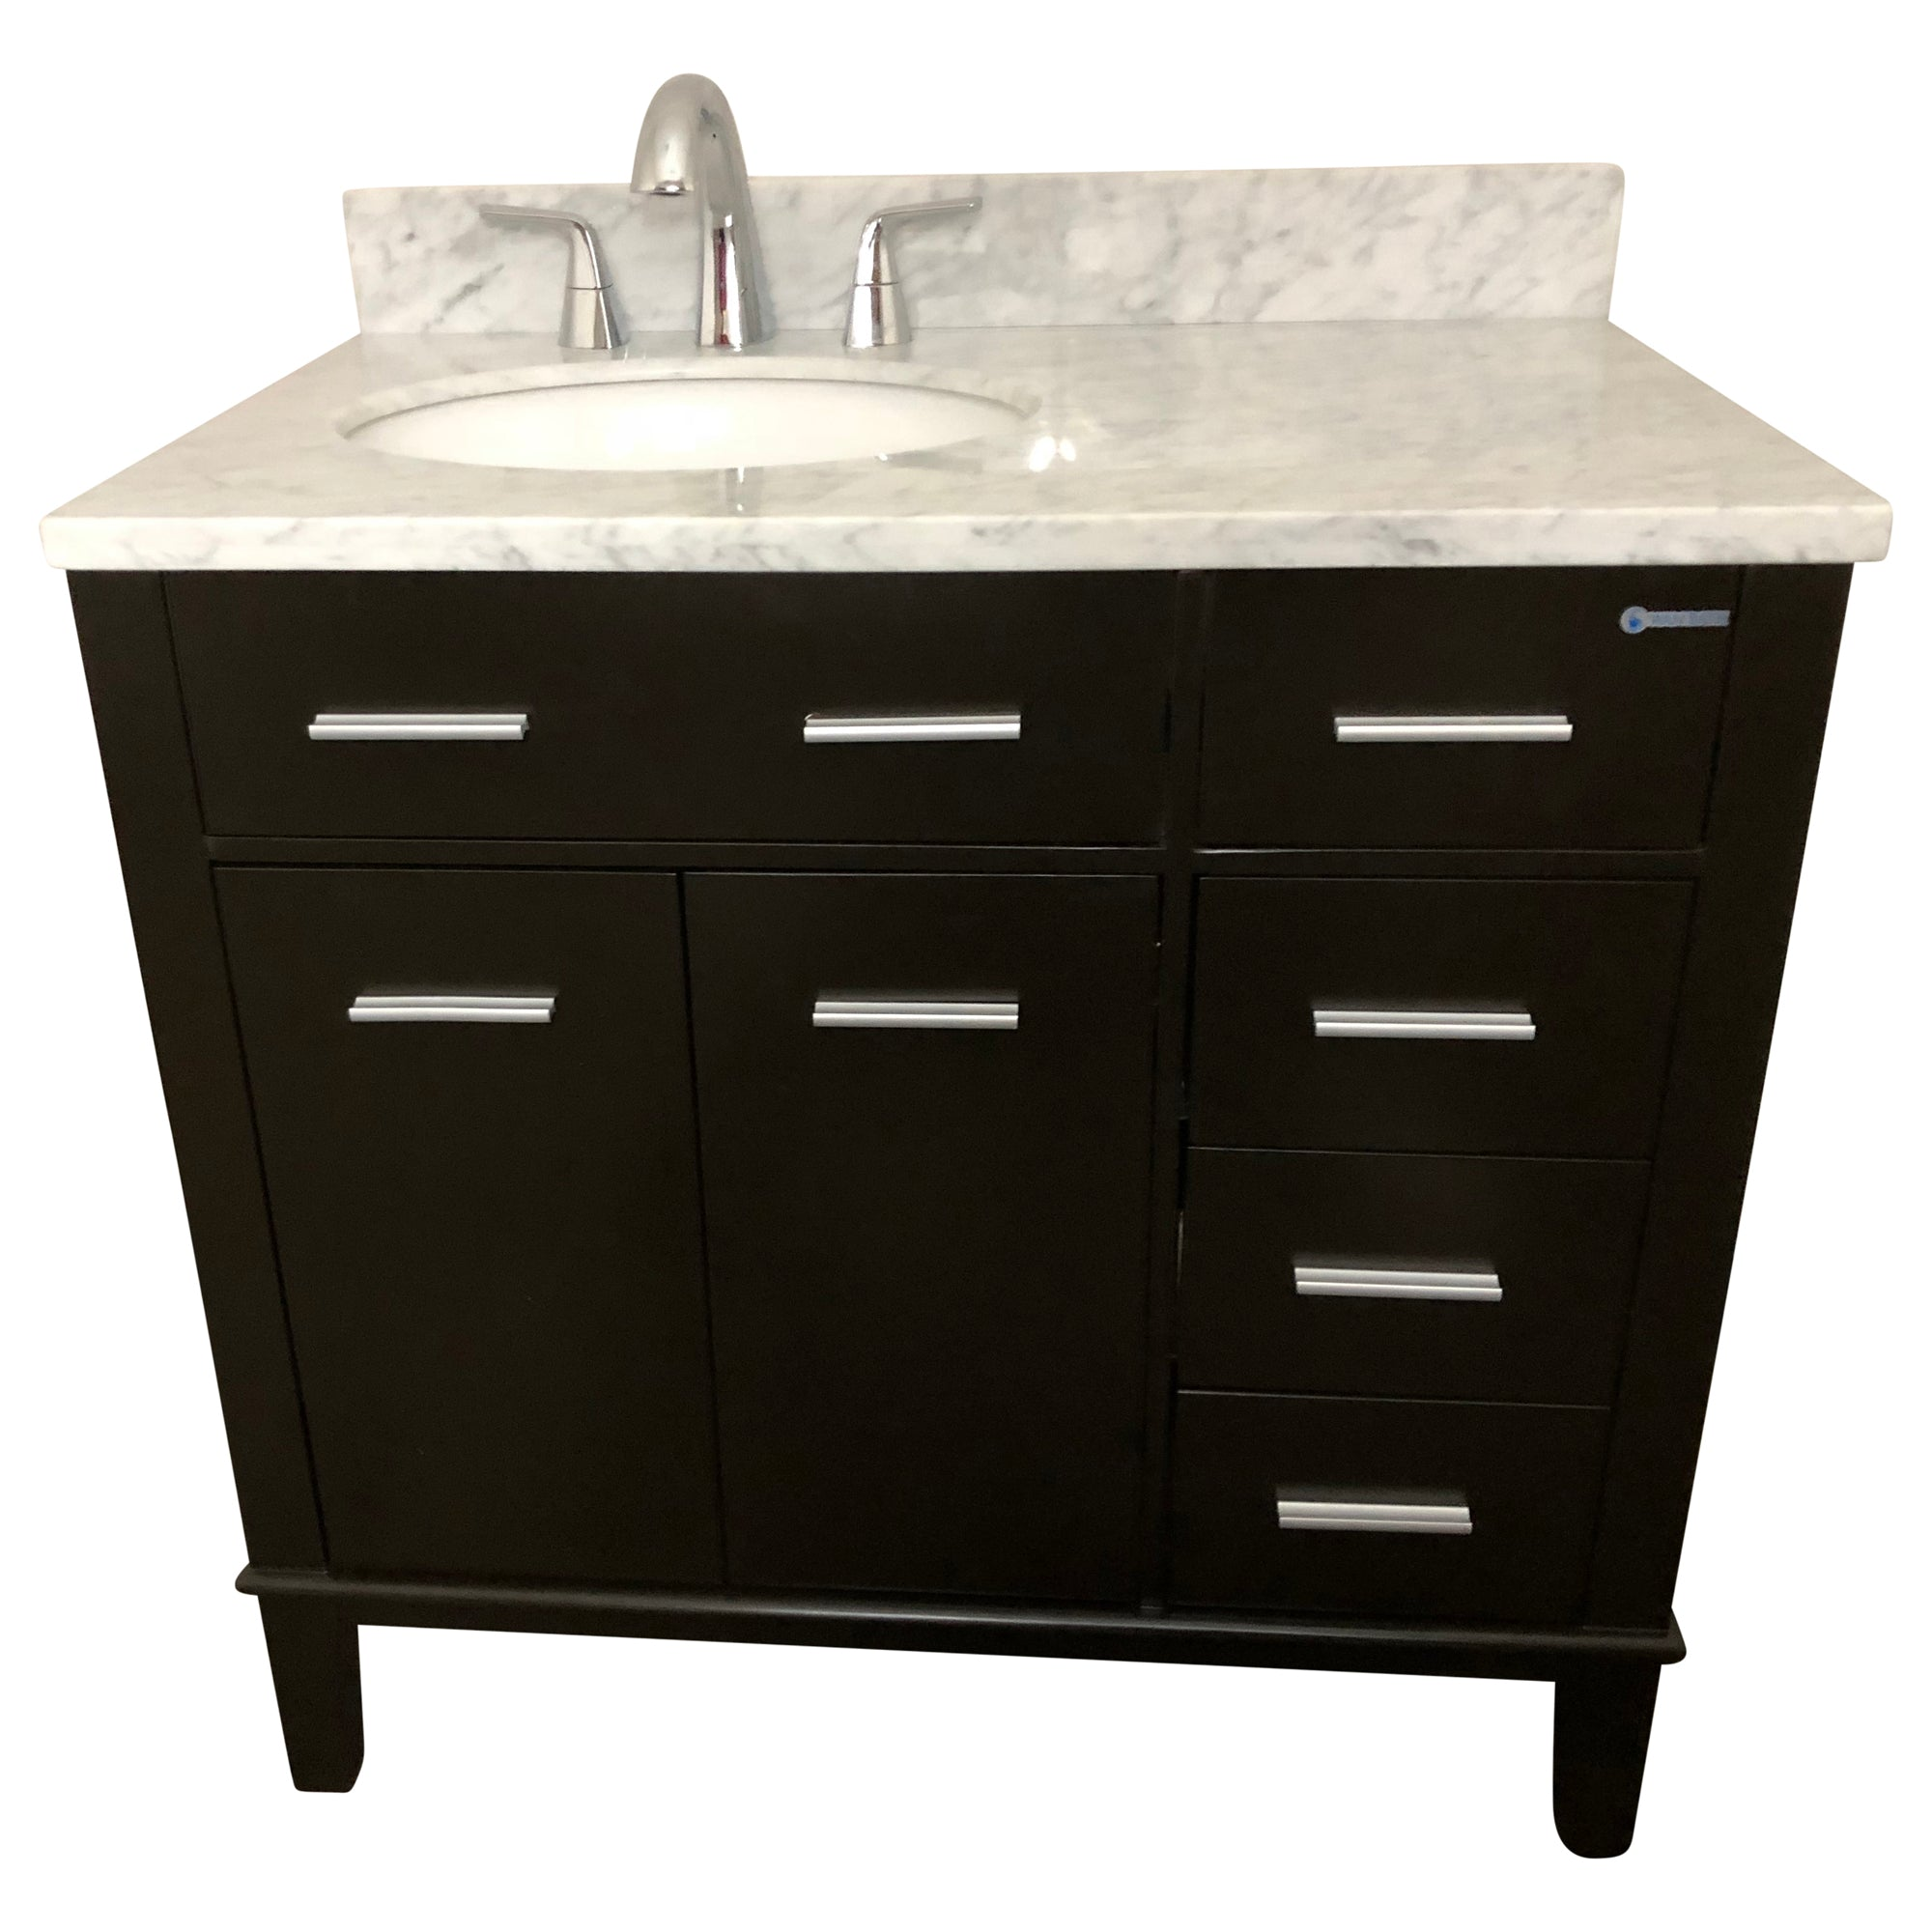 36 inch  Single Drop-In Sink Bathroom Vanity Cabinet Set with White Marble Top and Dark Coffee Finish